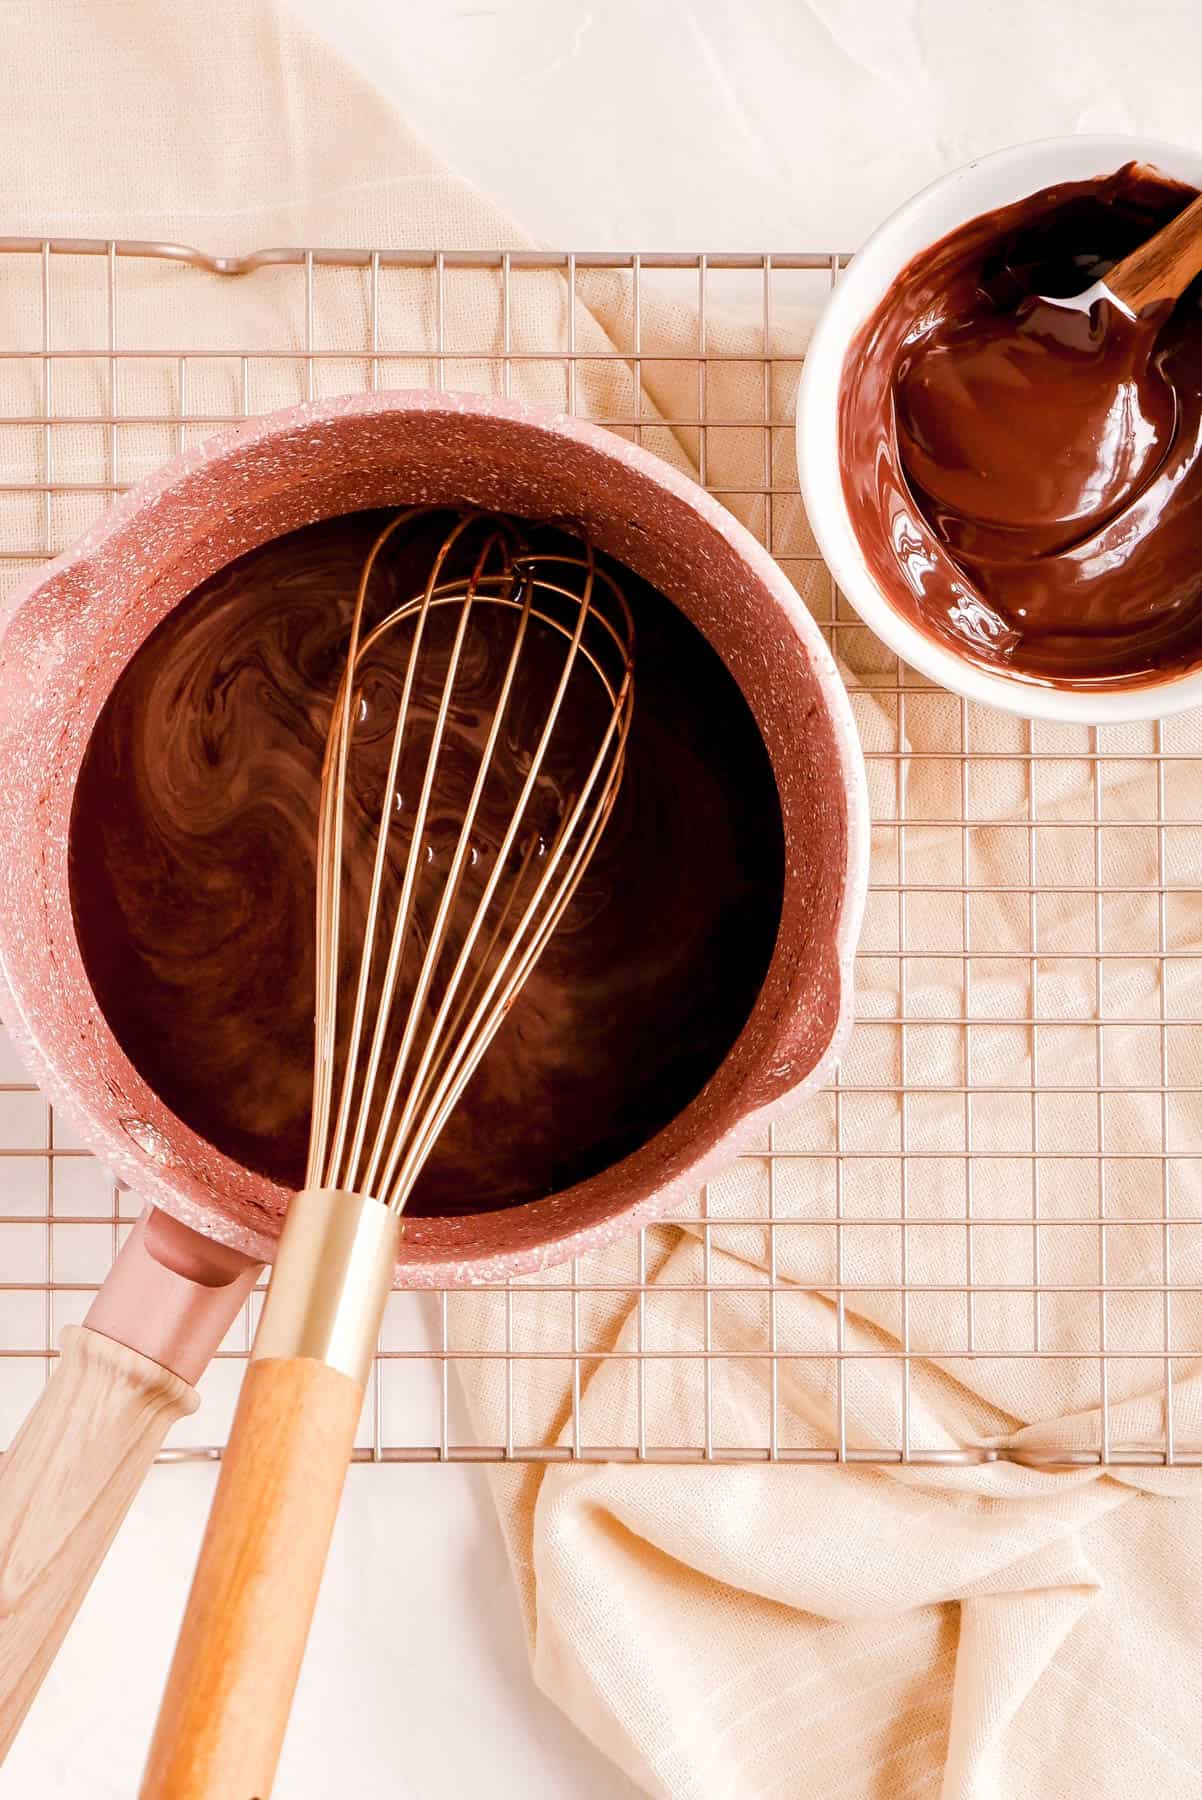 hot fudge sauce ingredients in a pot with a gold whisk on a copper wire rack with a bowl of melted chocolate on the side.